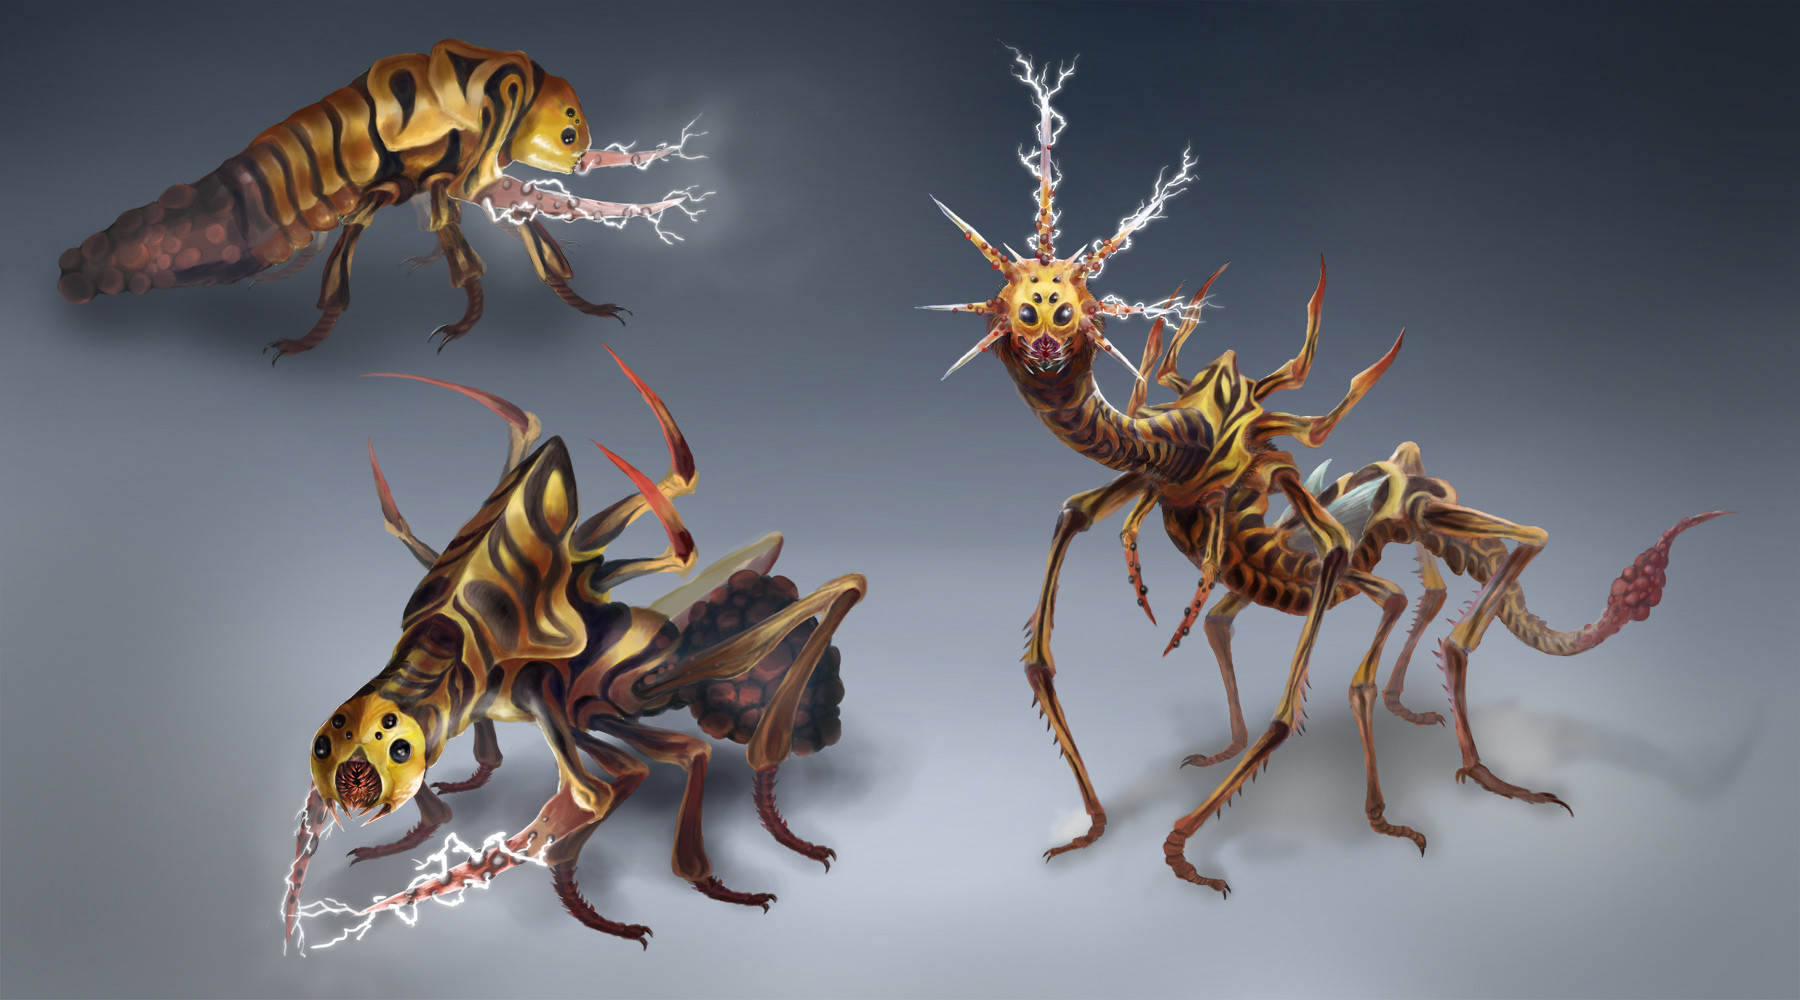 Orm irian thunder bug life cycle by catharina wendland